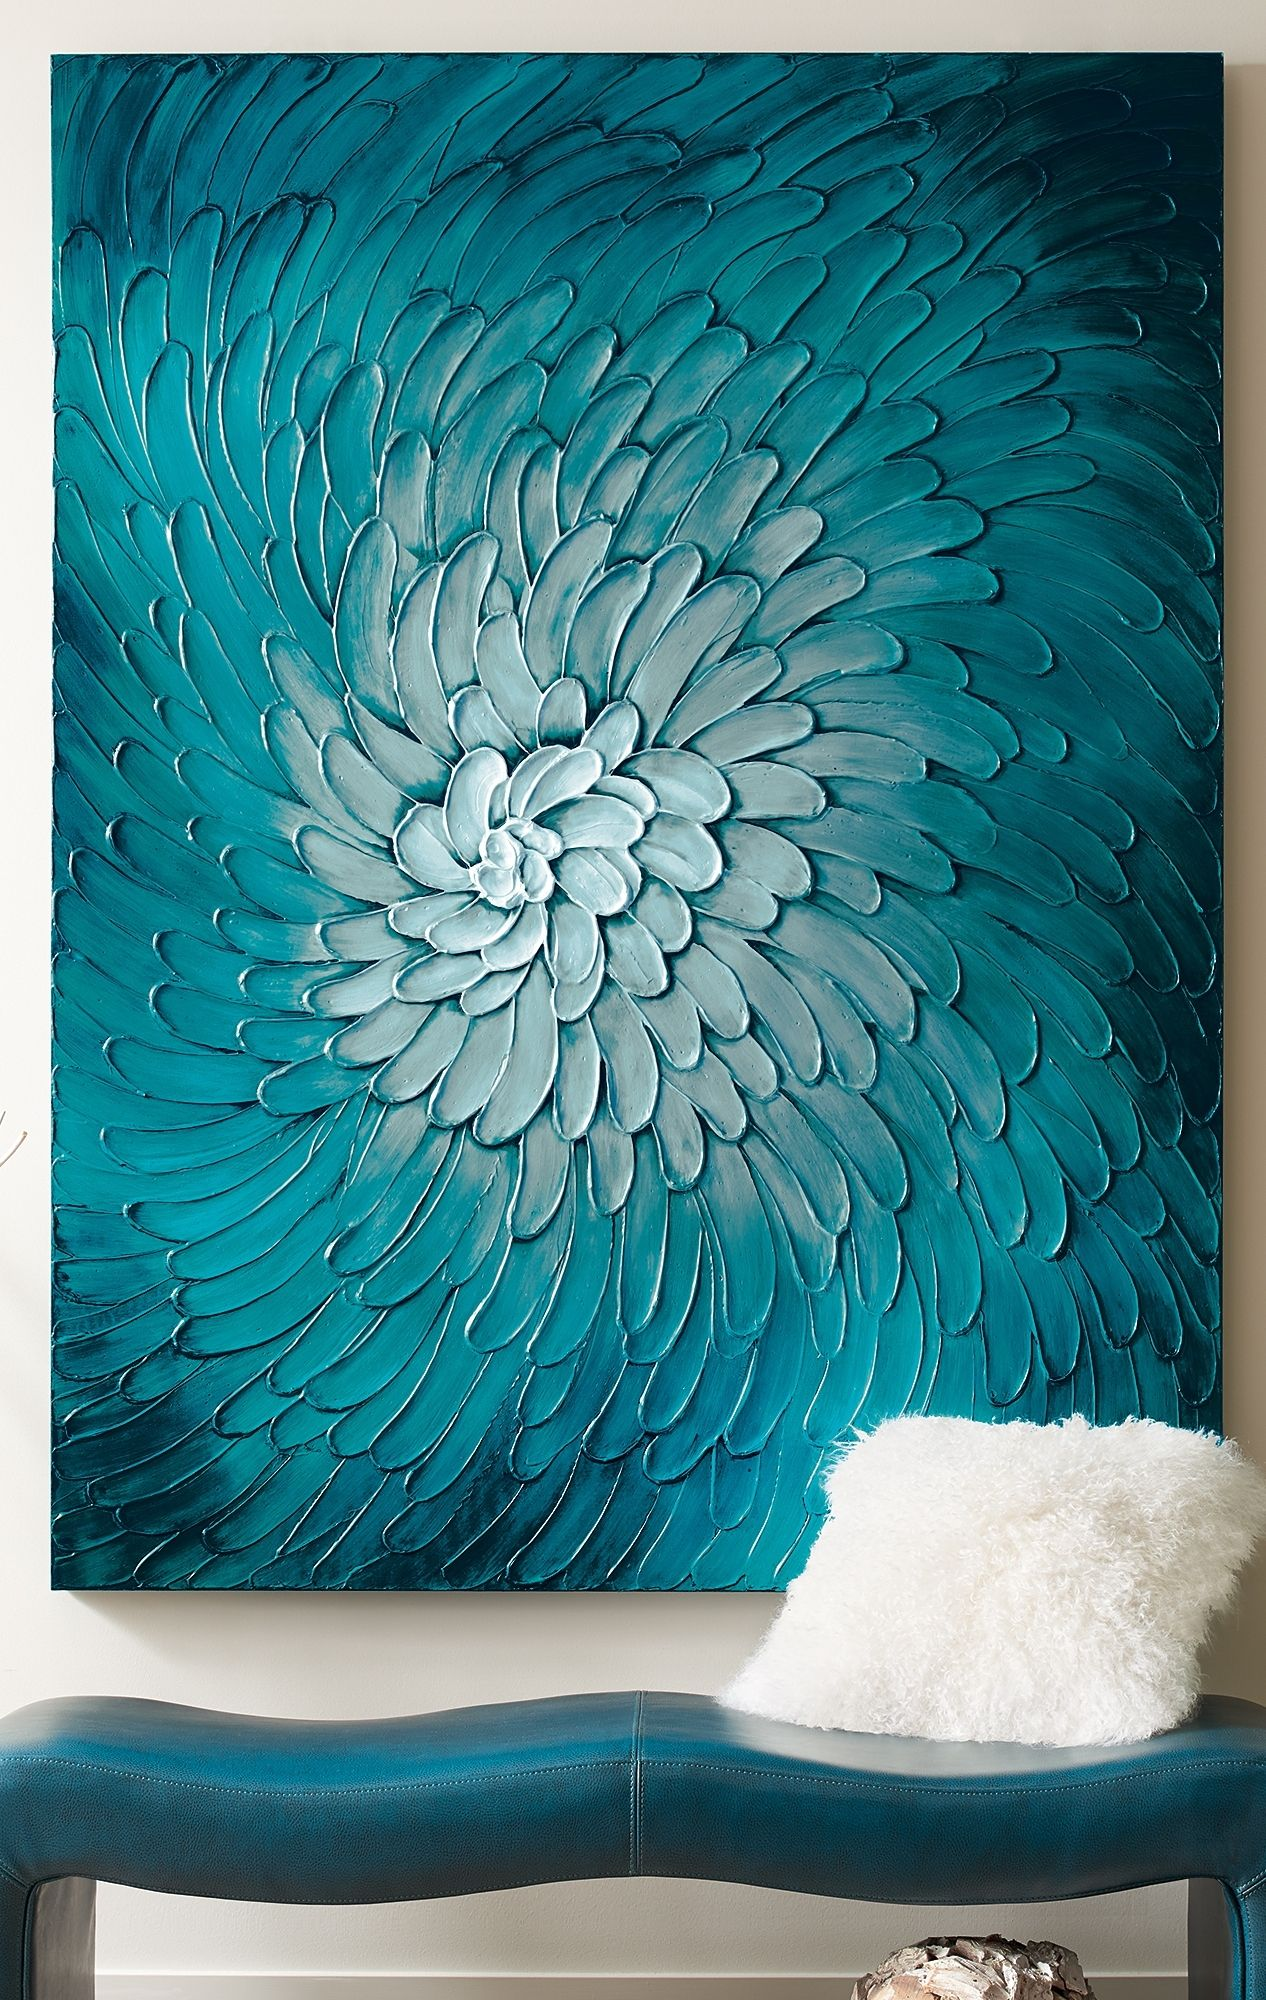 Teal Wall Art agate stone slices abstract art | agate stone, stone and canvas